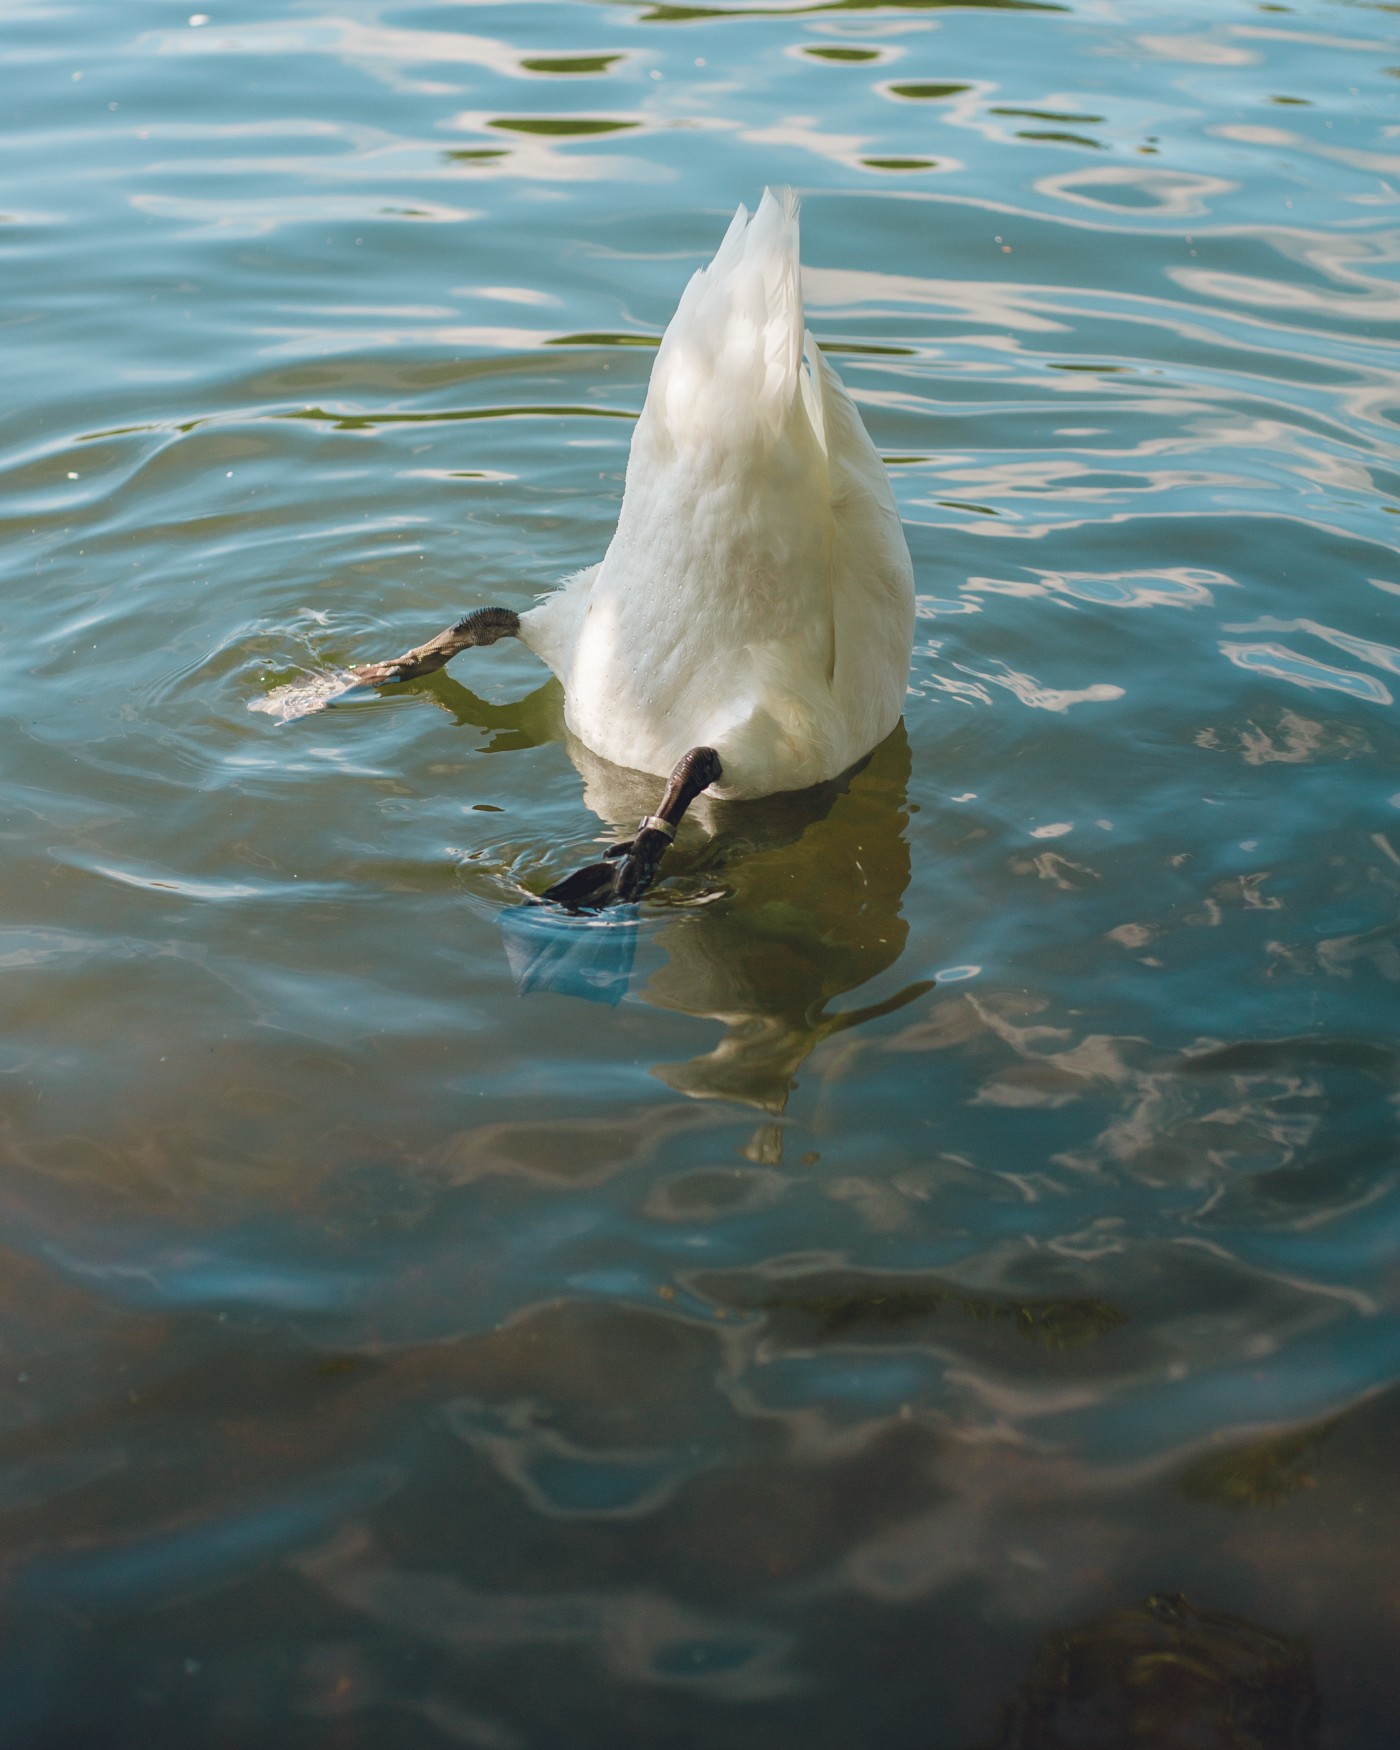 A goose's white butt sticking out of water.